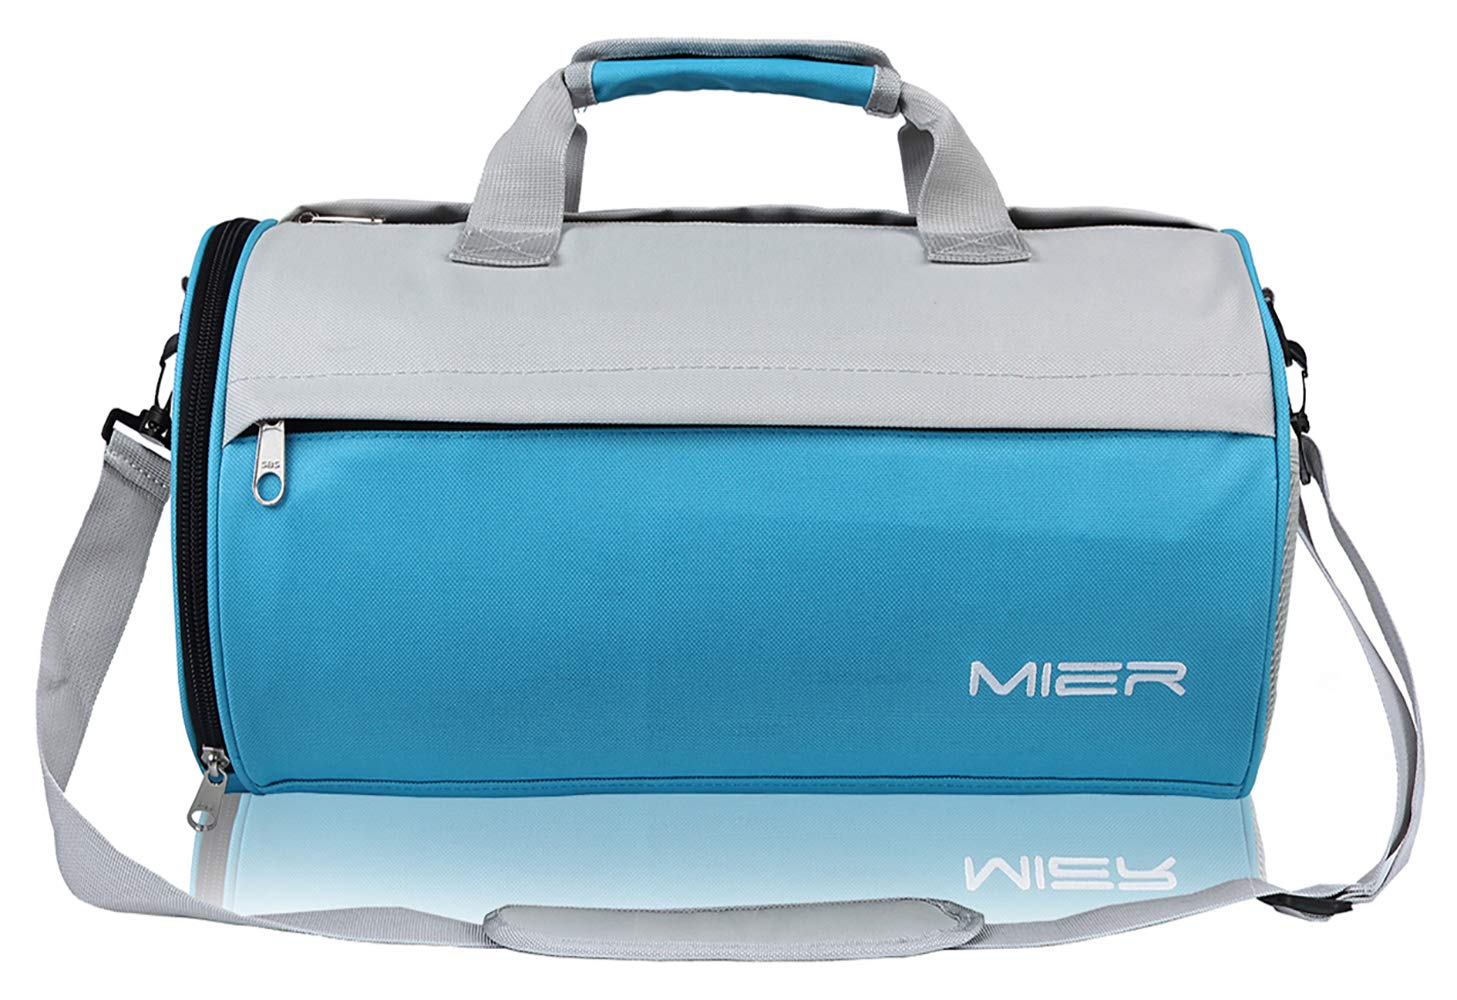 MIER Barrel Travel Sports Bag for Women and Men Small Gym Bag with Shoes Compartment MIERLIFE-SPO001-D